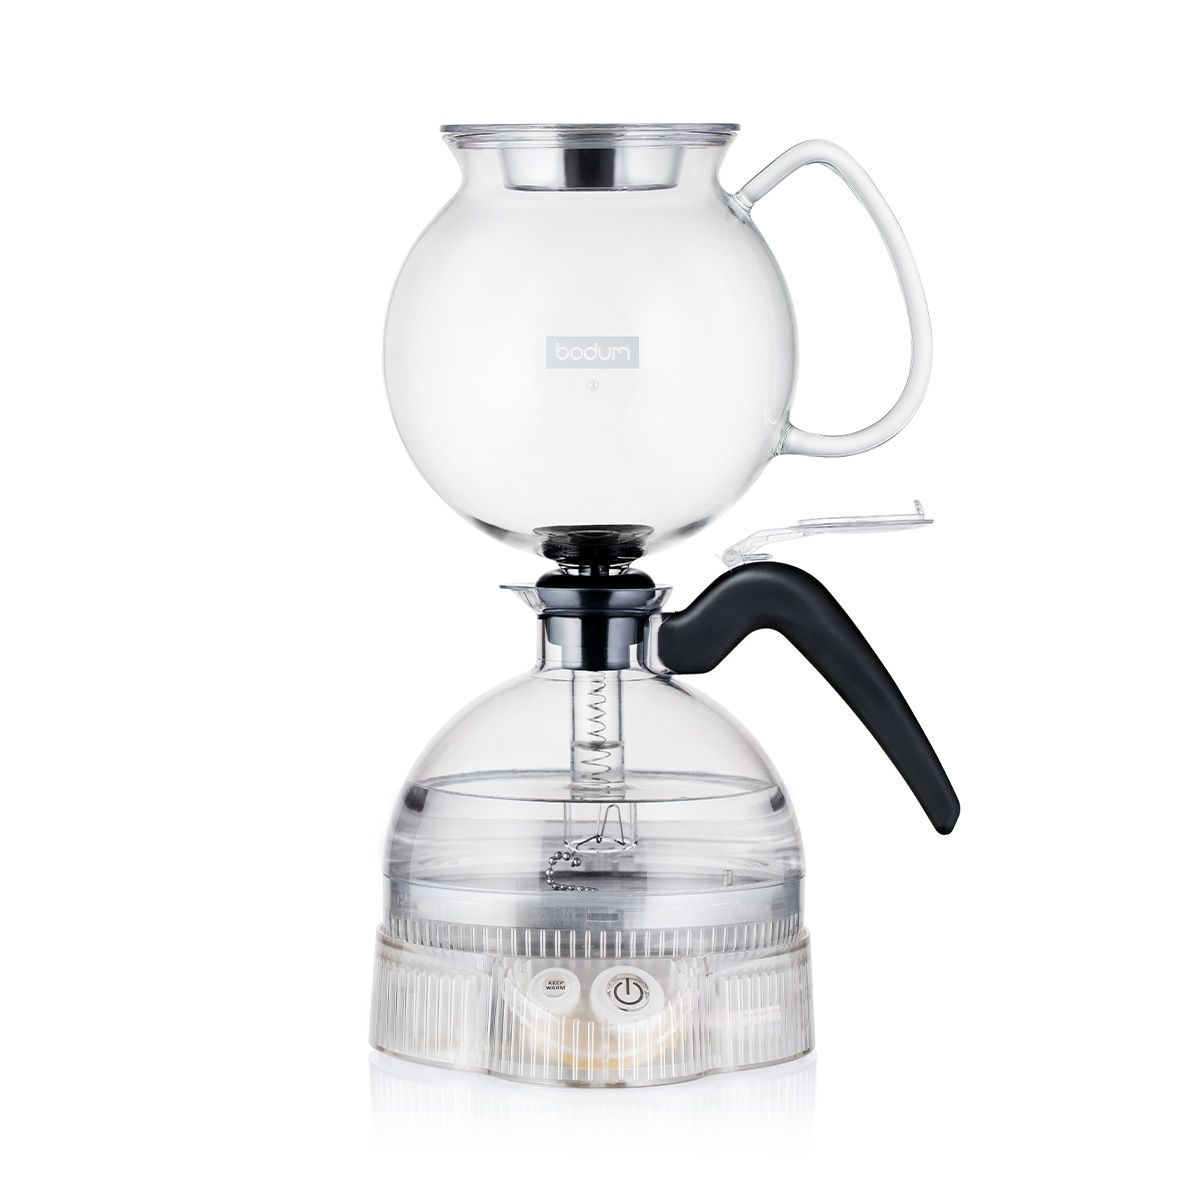 Siphon Coffee Maker ePEBO 1.0 L